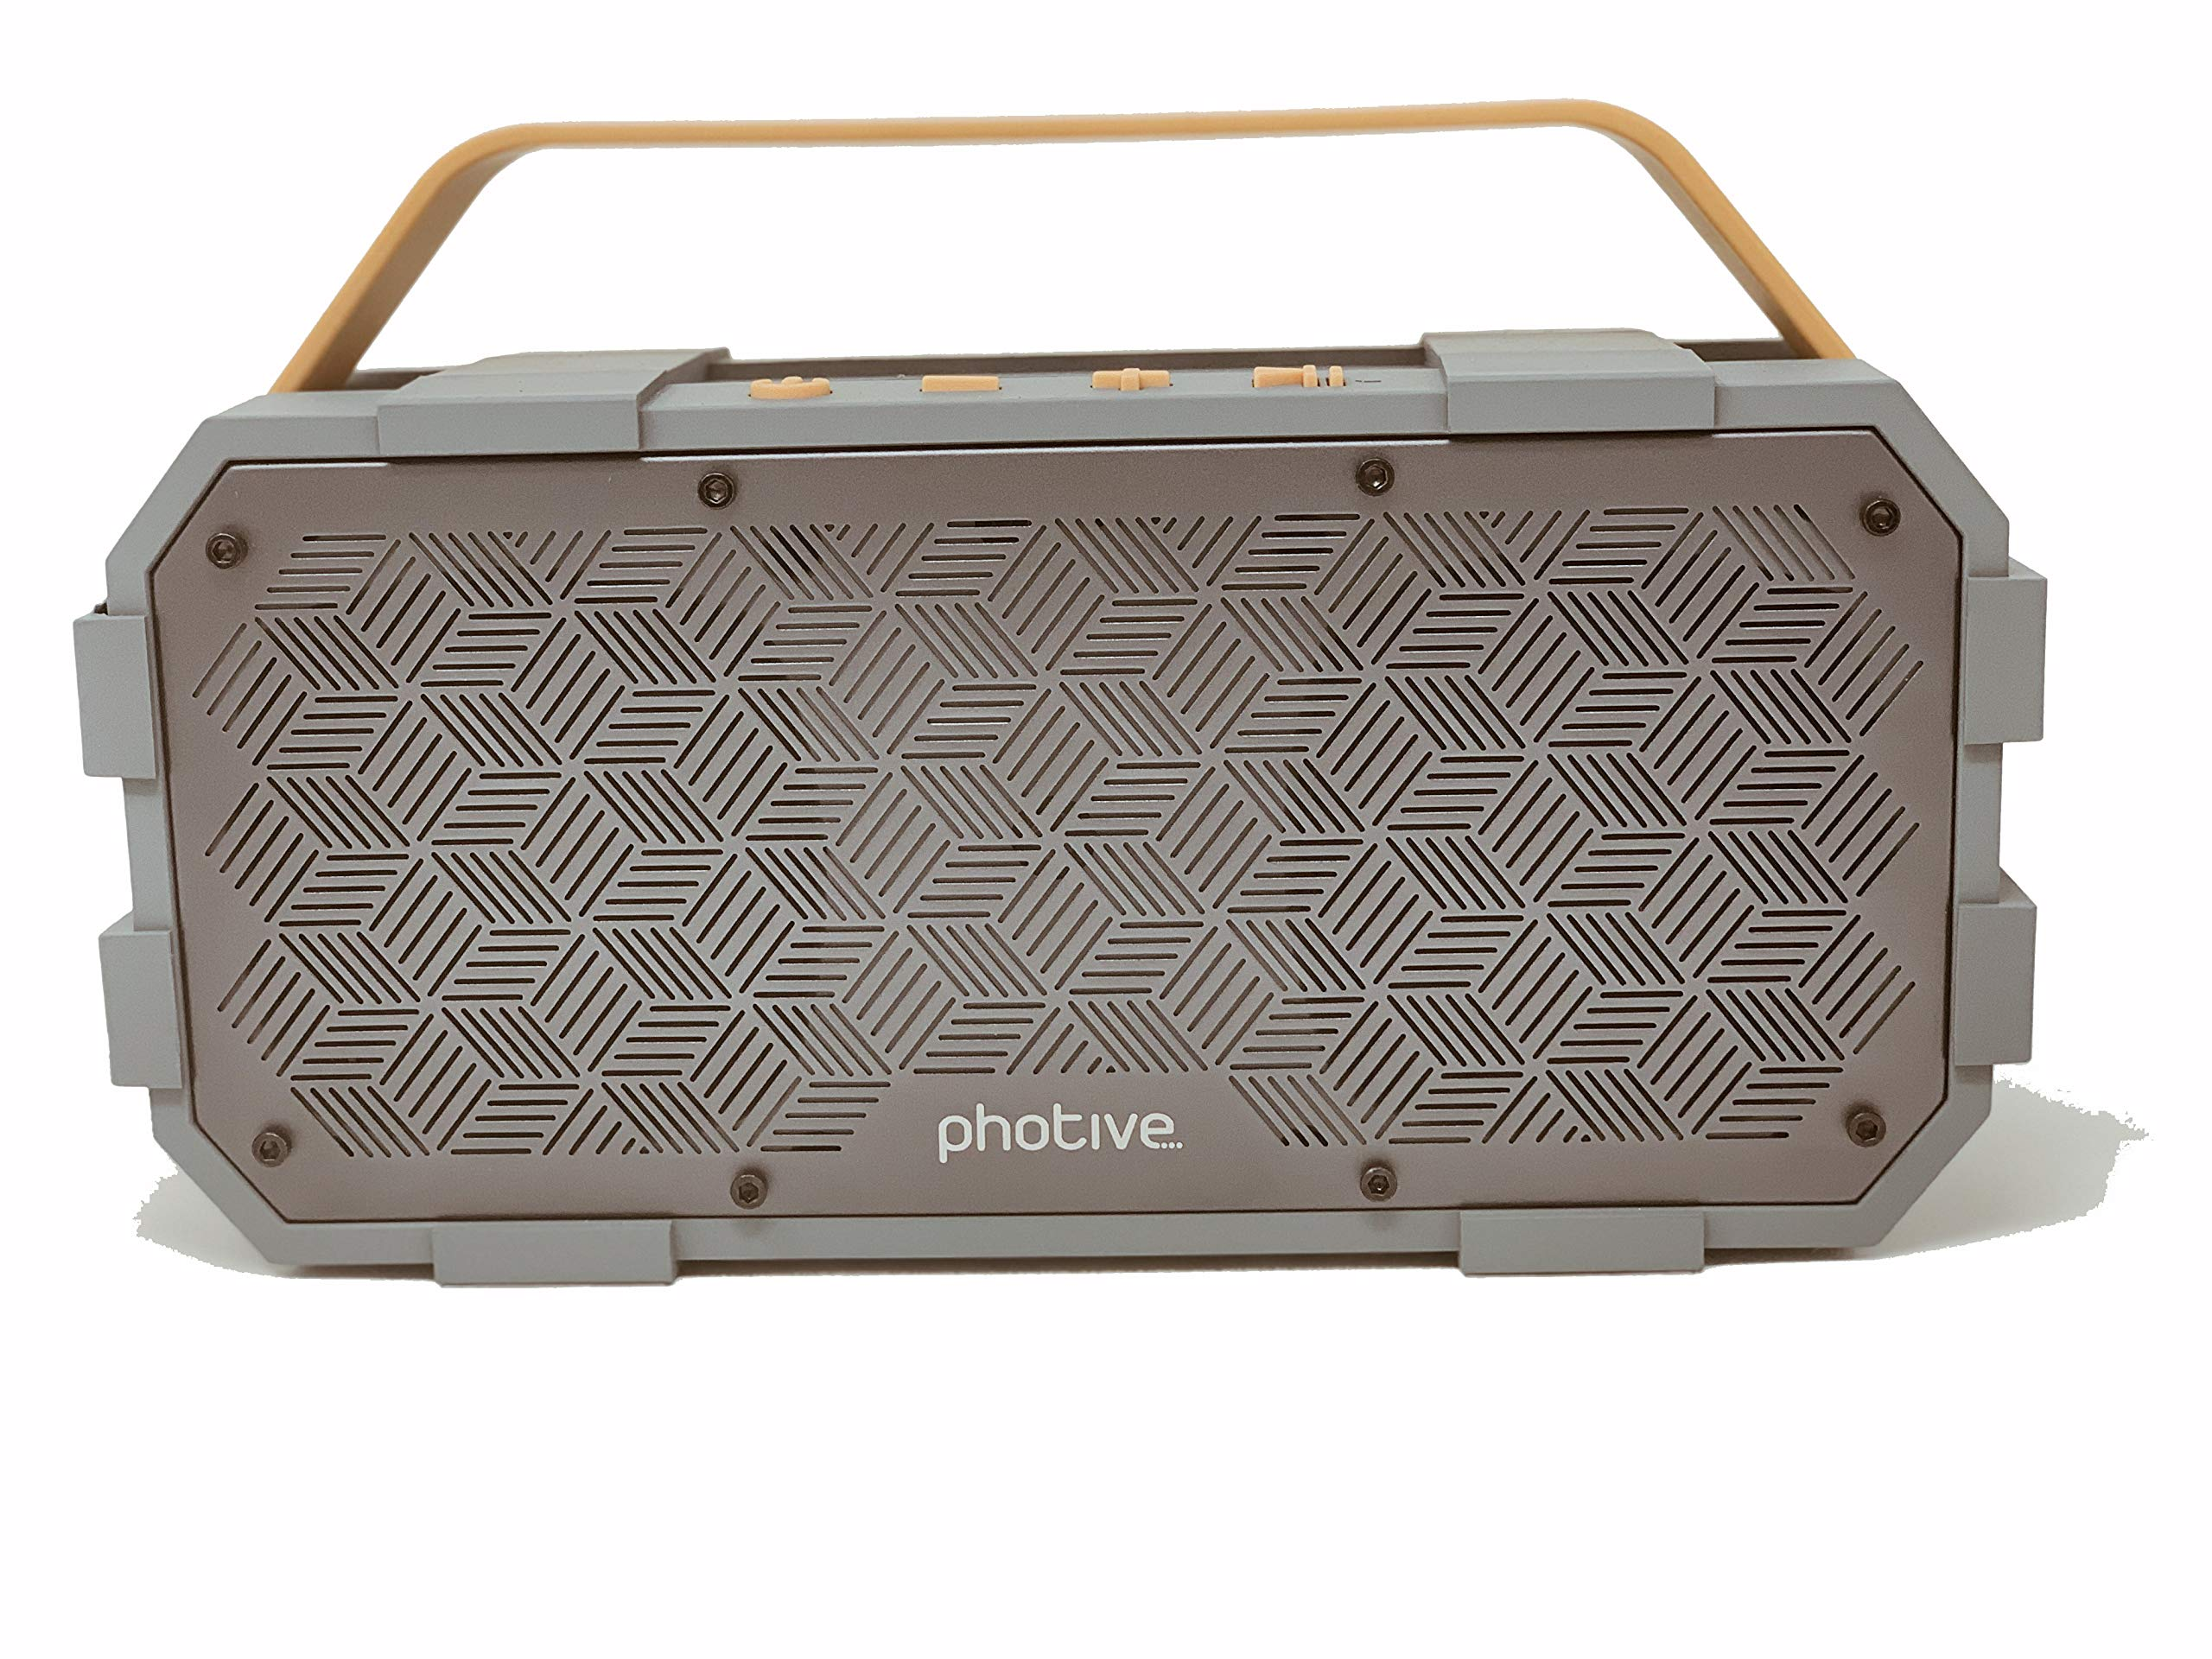 Photive Bluetooth Speaker | M90 XLarge Portable Wireless | Built-in Subwoofer Waterproof Shockproof 20-Watts Extreme Audio Power | IPX5 Water Resistant Indoor Outdoor Stereo Beach Pool Party Boombox by Fotives